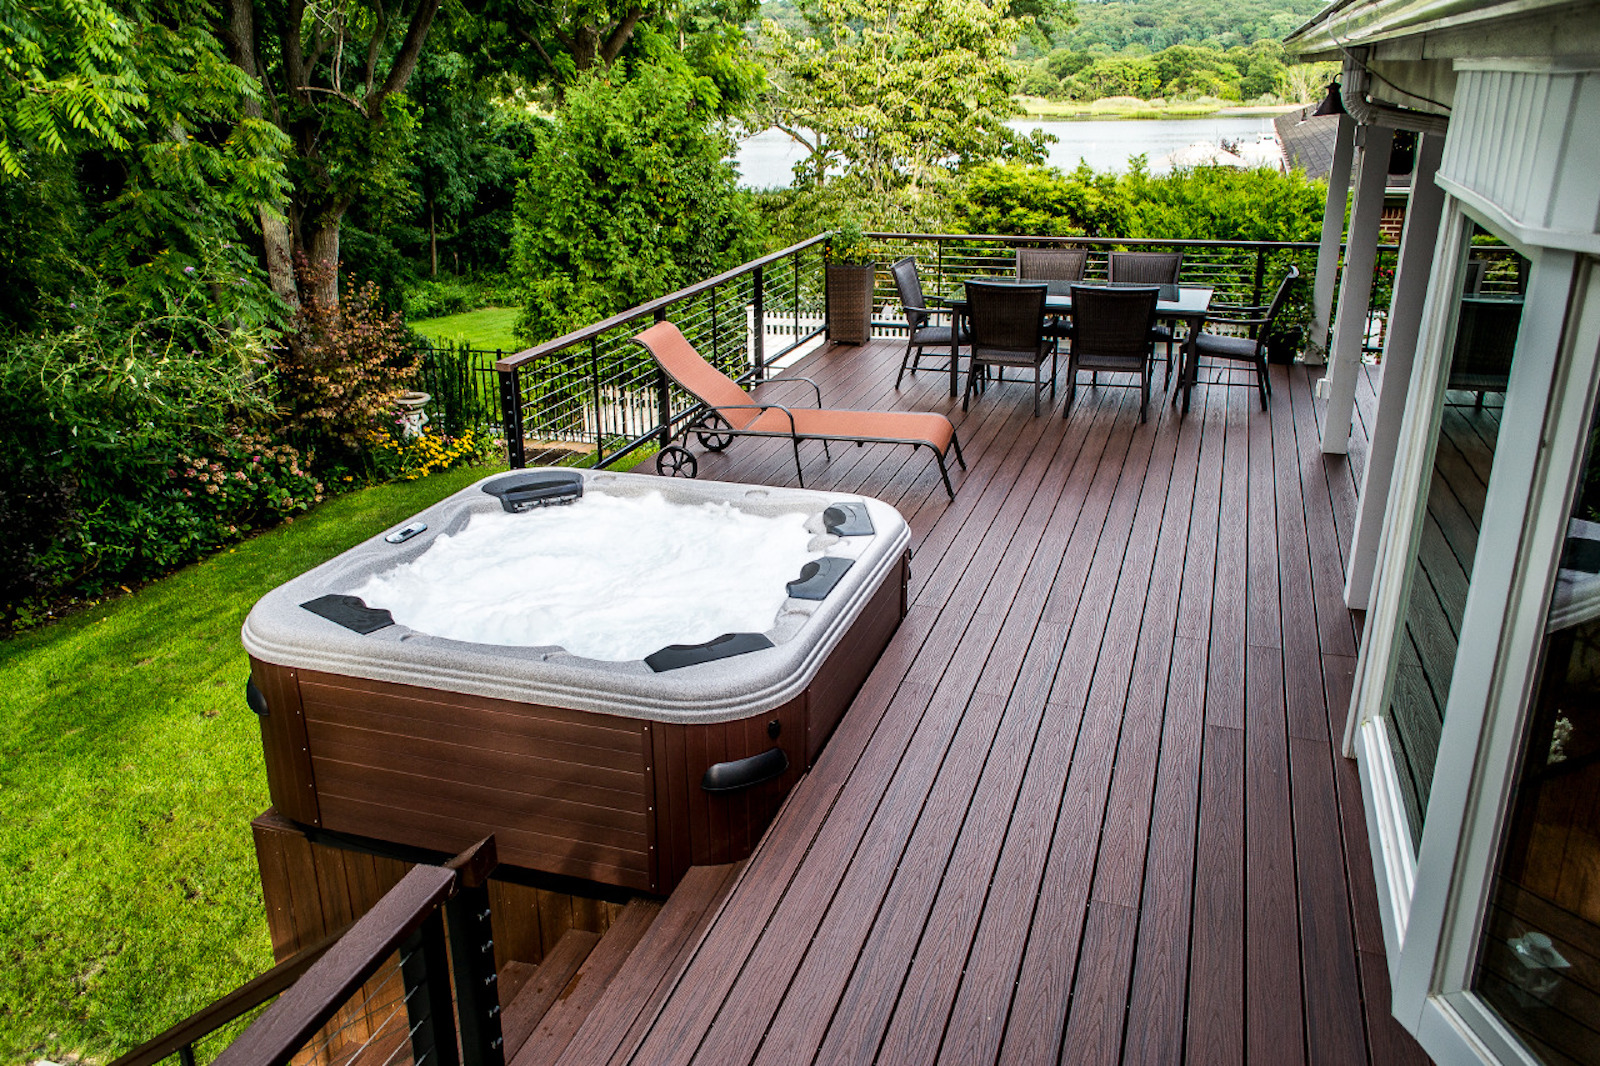 hight resolution of wood deck with hot tub overlooking lush green area